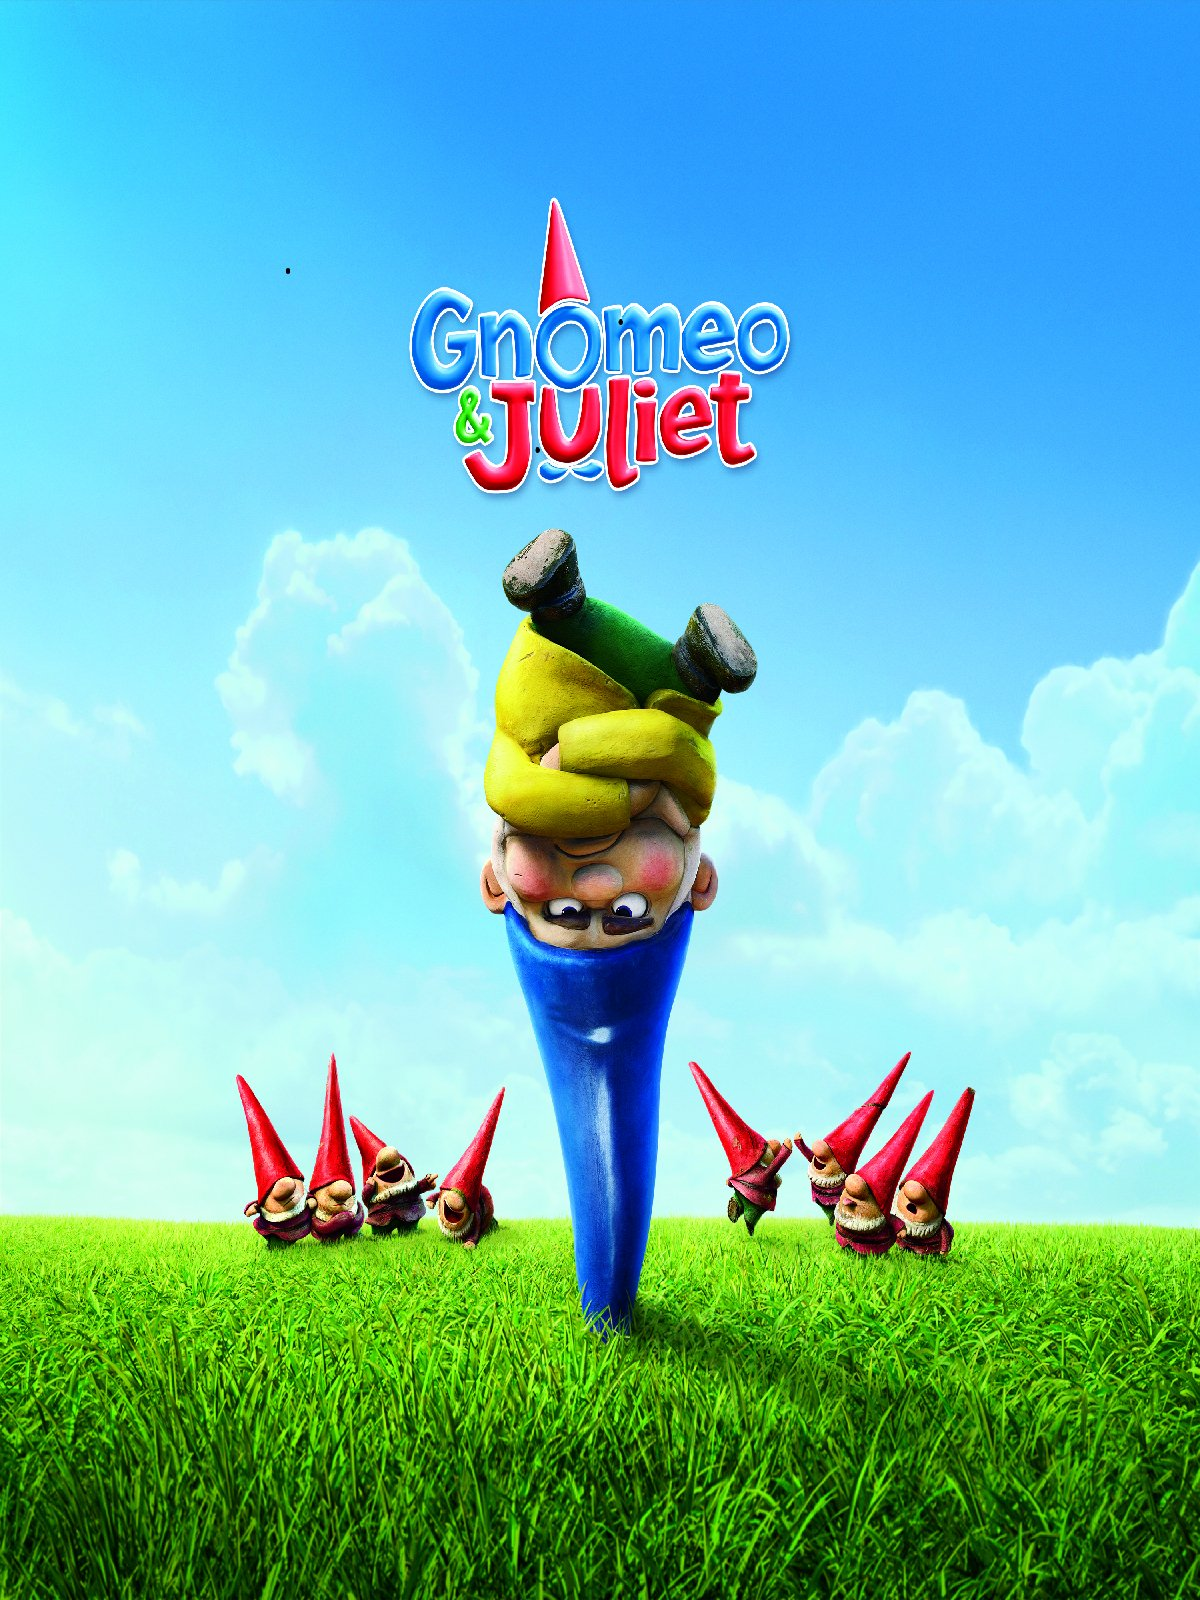 Gnomeo & Juliet by